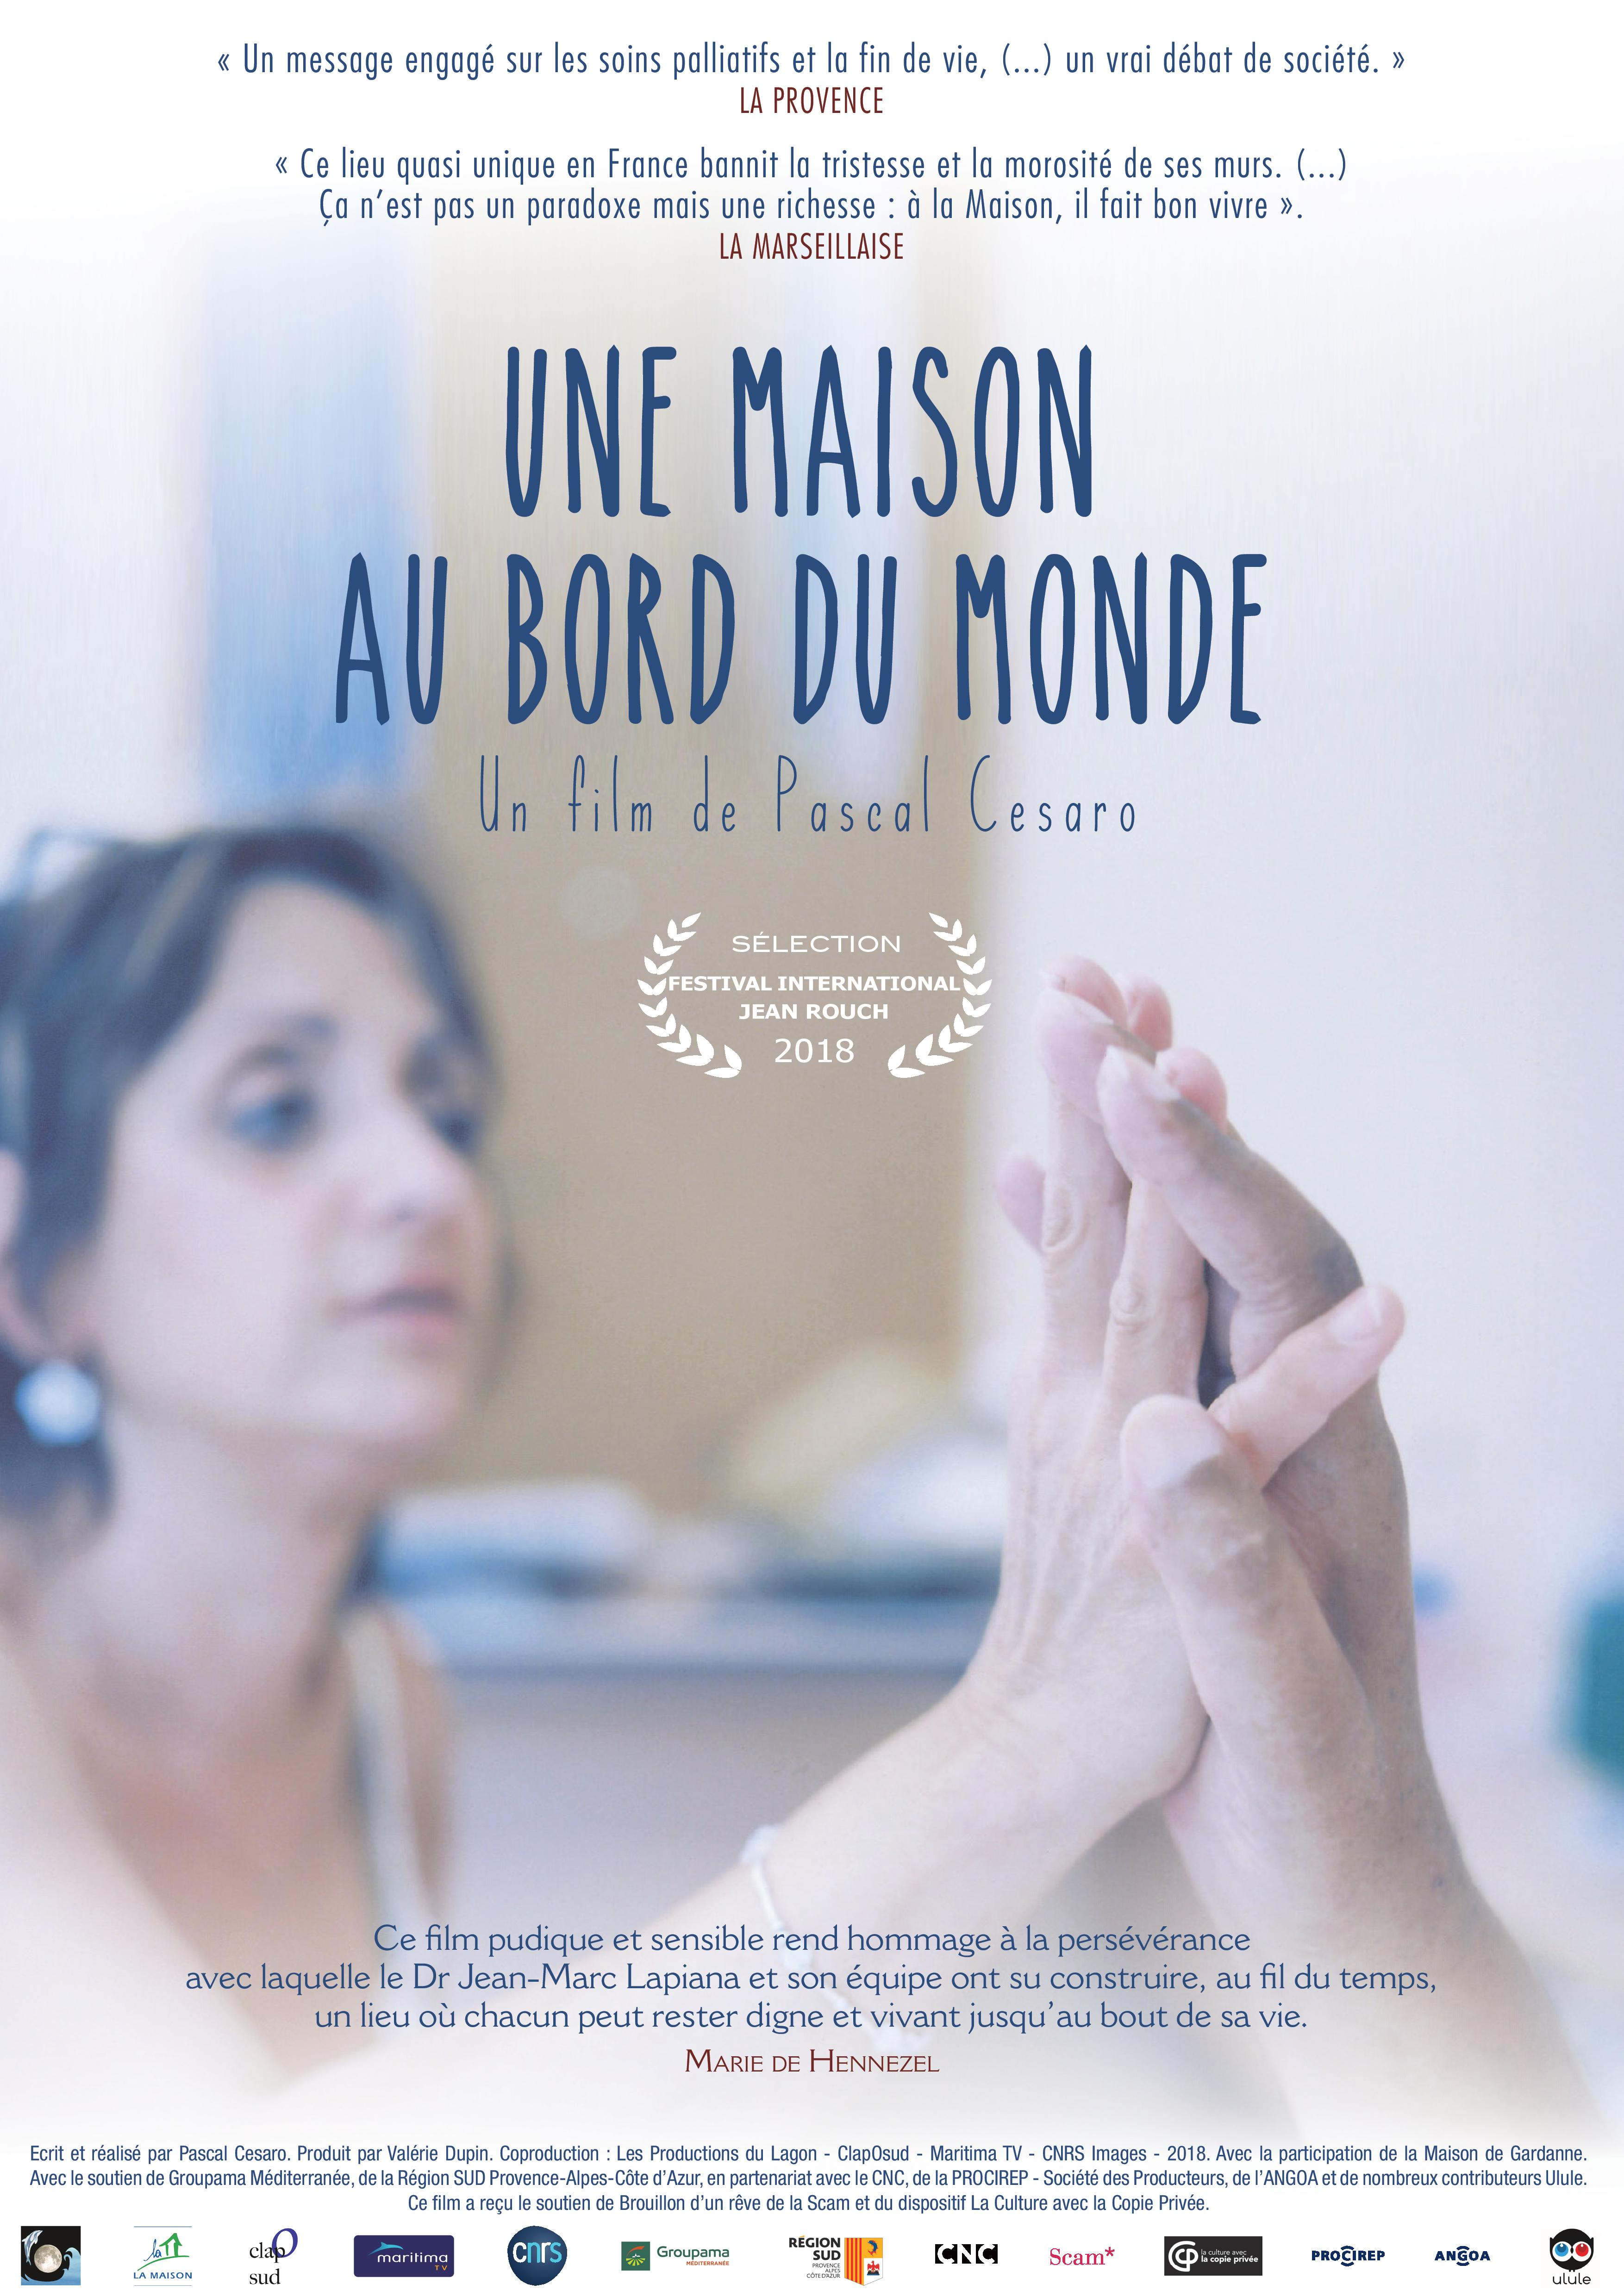 5.04.19 projection at FRAC of « Une maison au bord du monde » of Pascal Cesaro